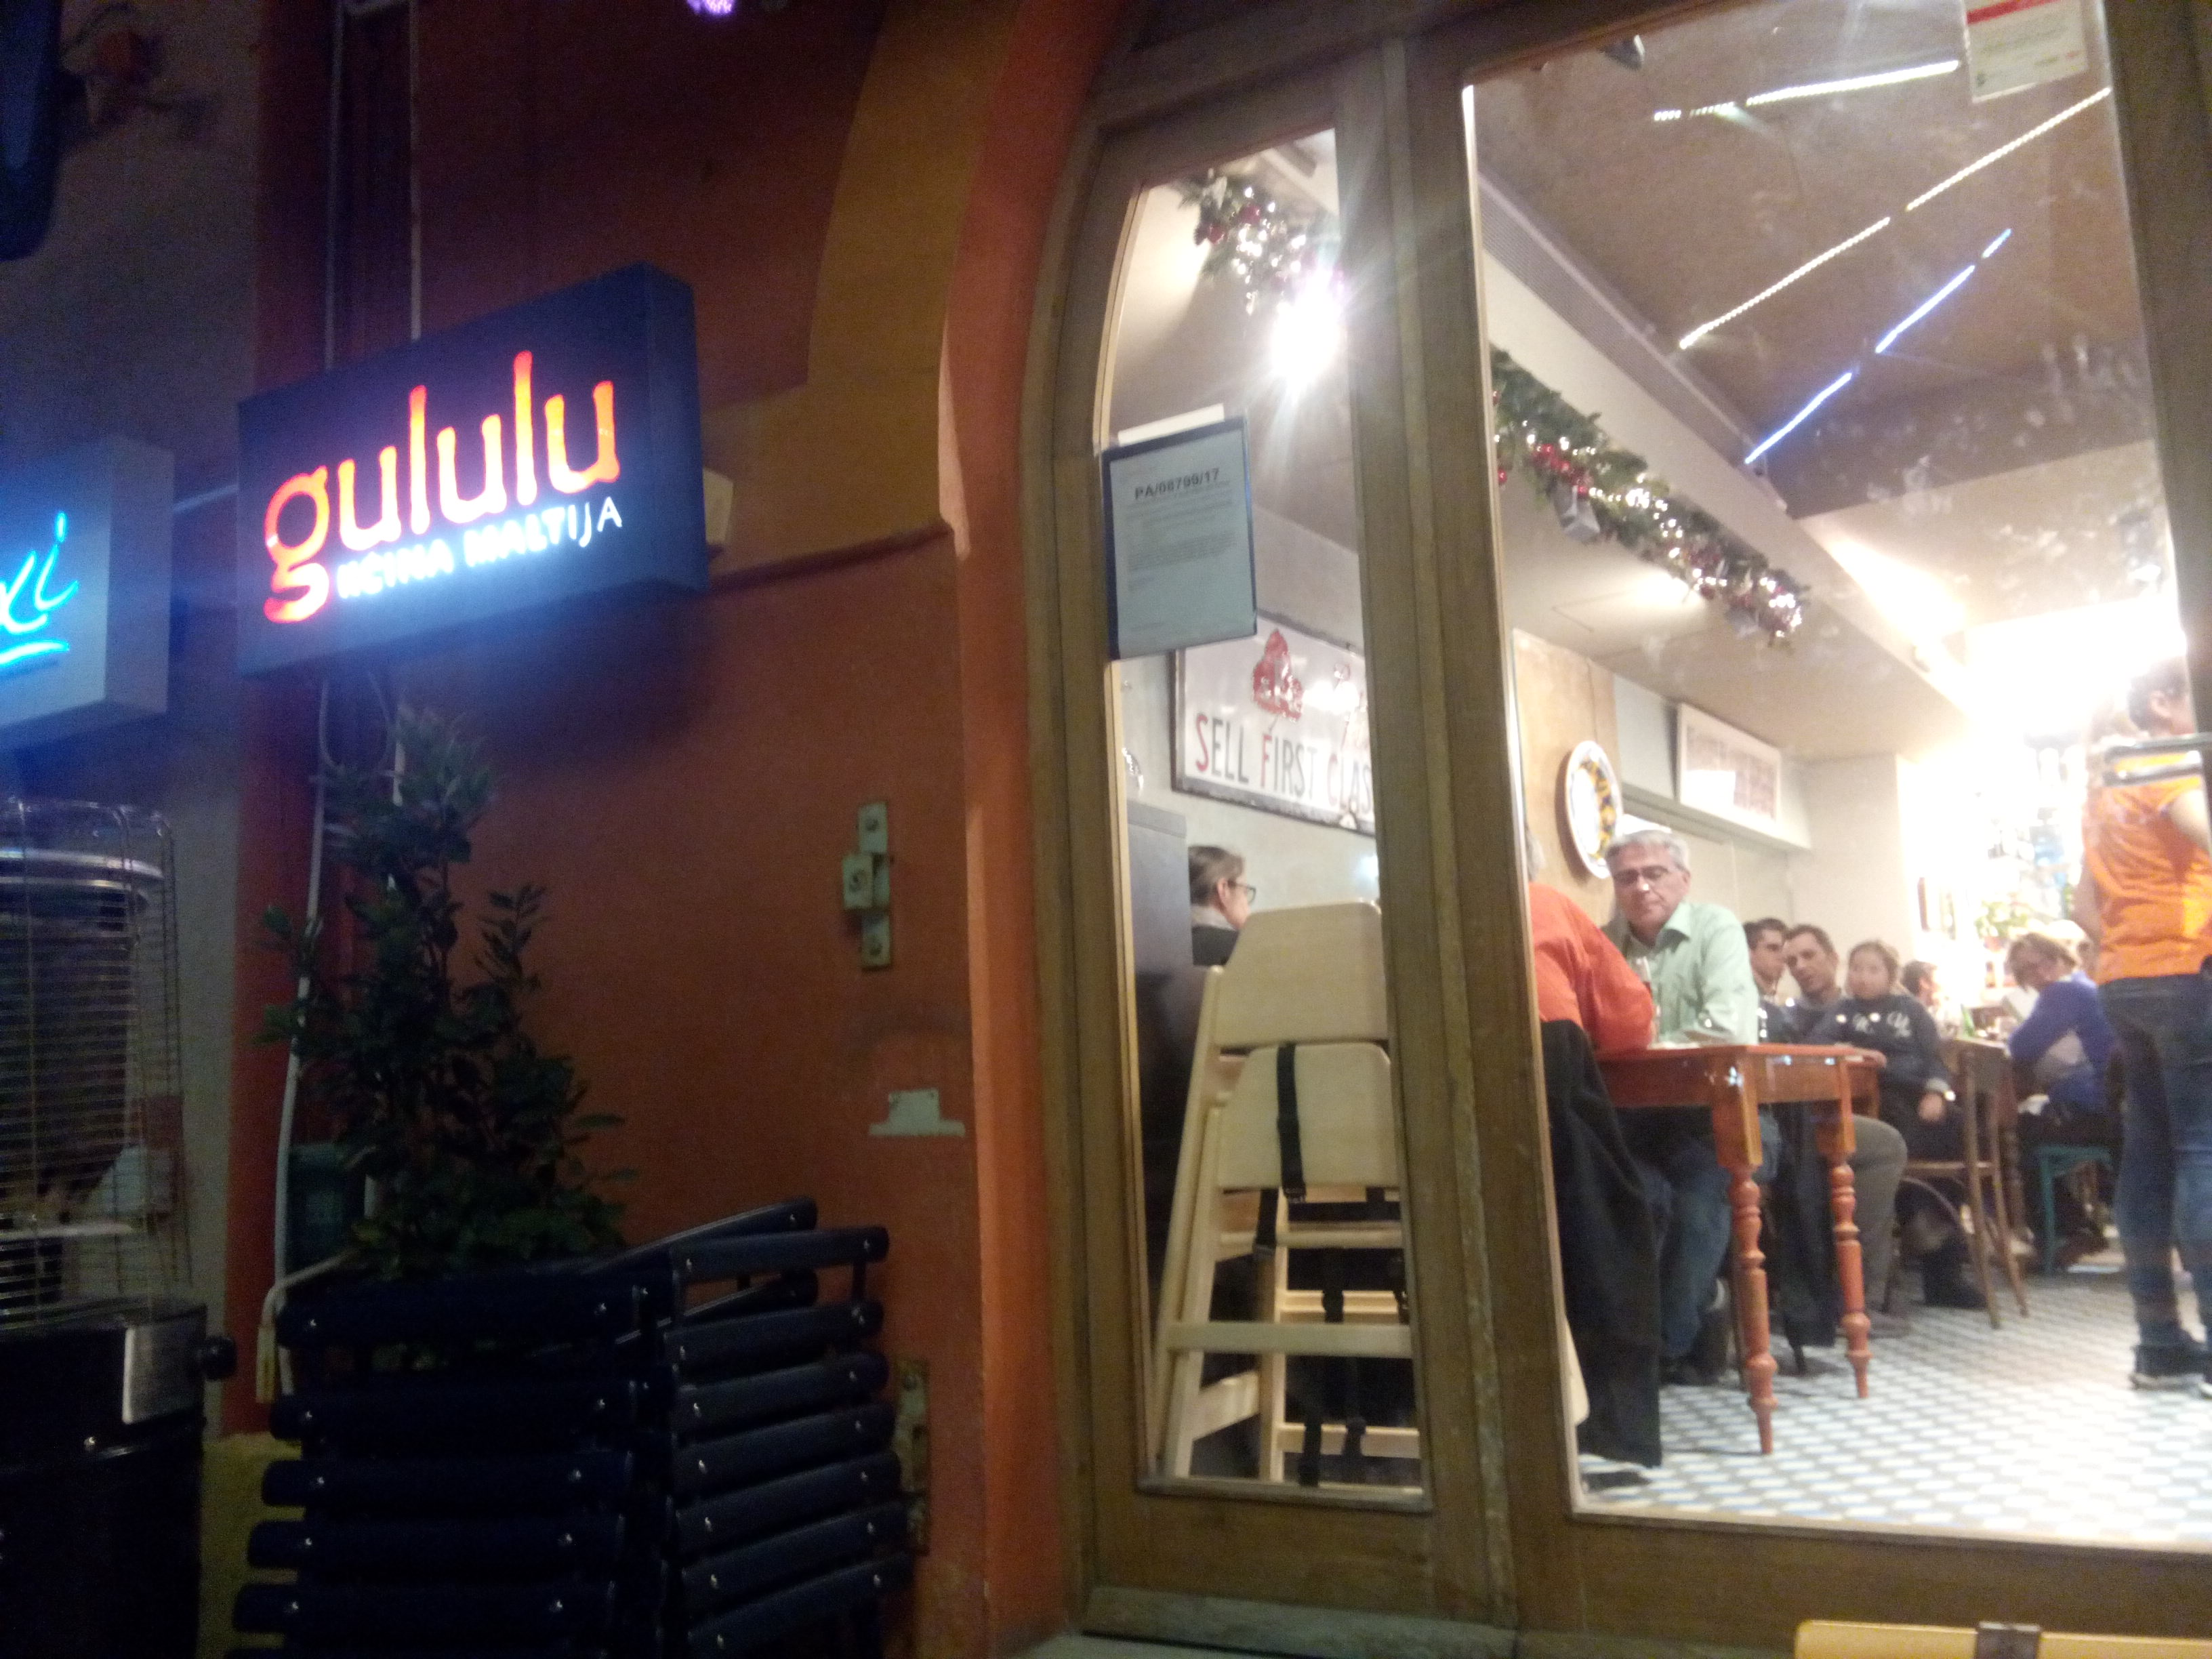 A lit sign reading 'gululu' next to the well-lit restaurant entrance